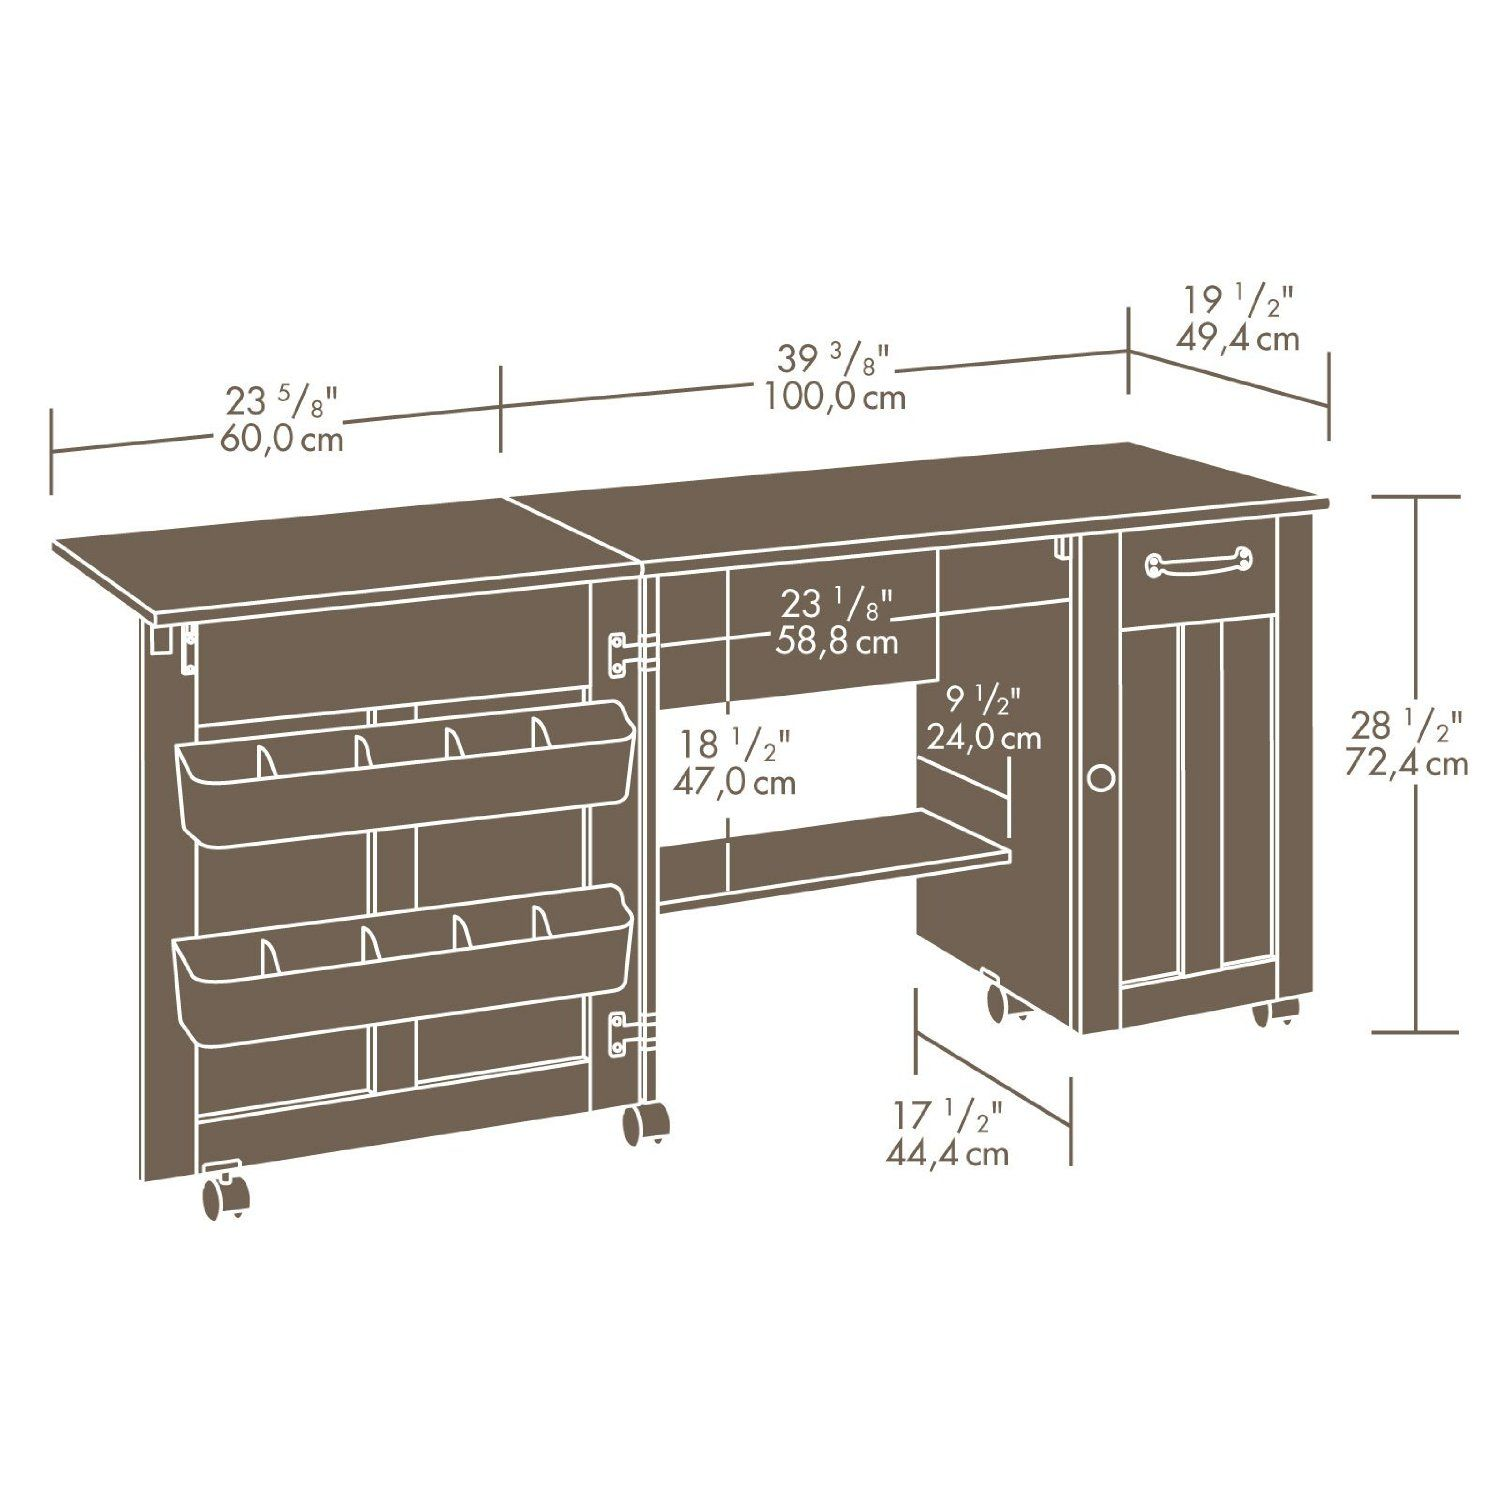 Amazon sewing craft table american cherry finish storage new sauder sewing machine craft table drop leaf shelves storage bins cabinets watchthetrailerfo